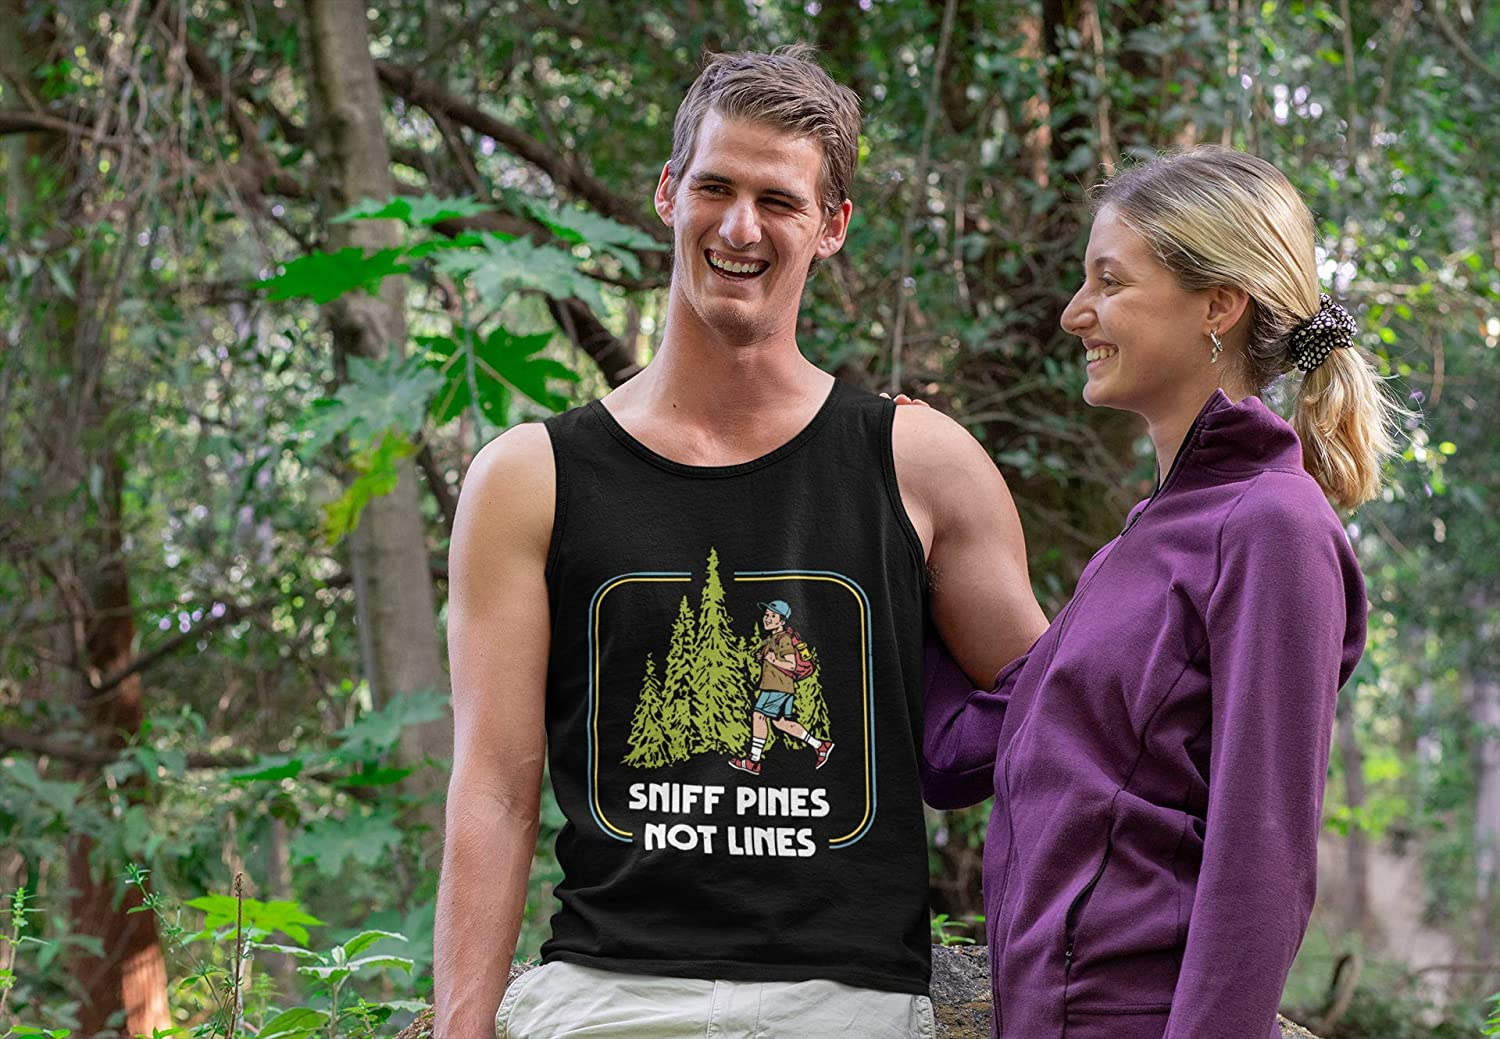 Sweatshirt For Men Women Boy Scout Funny Gift For Your Friend T-Shirt Crewneck Snort Sniff Pines Not Lines Snort Lines While In The Pines Hoodie Tank Top Long Sleeve